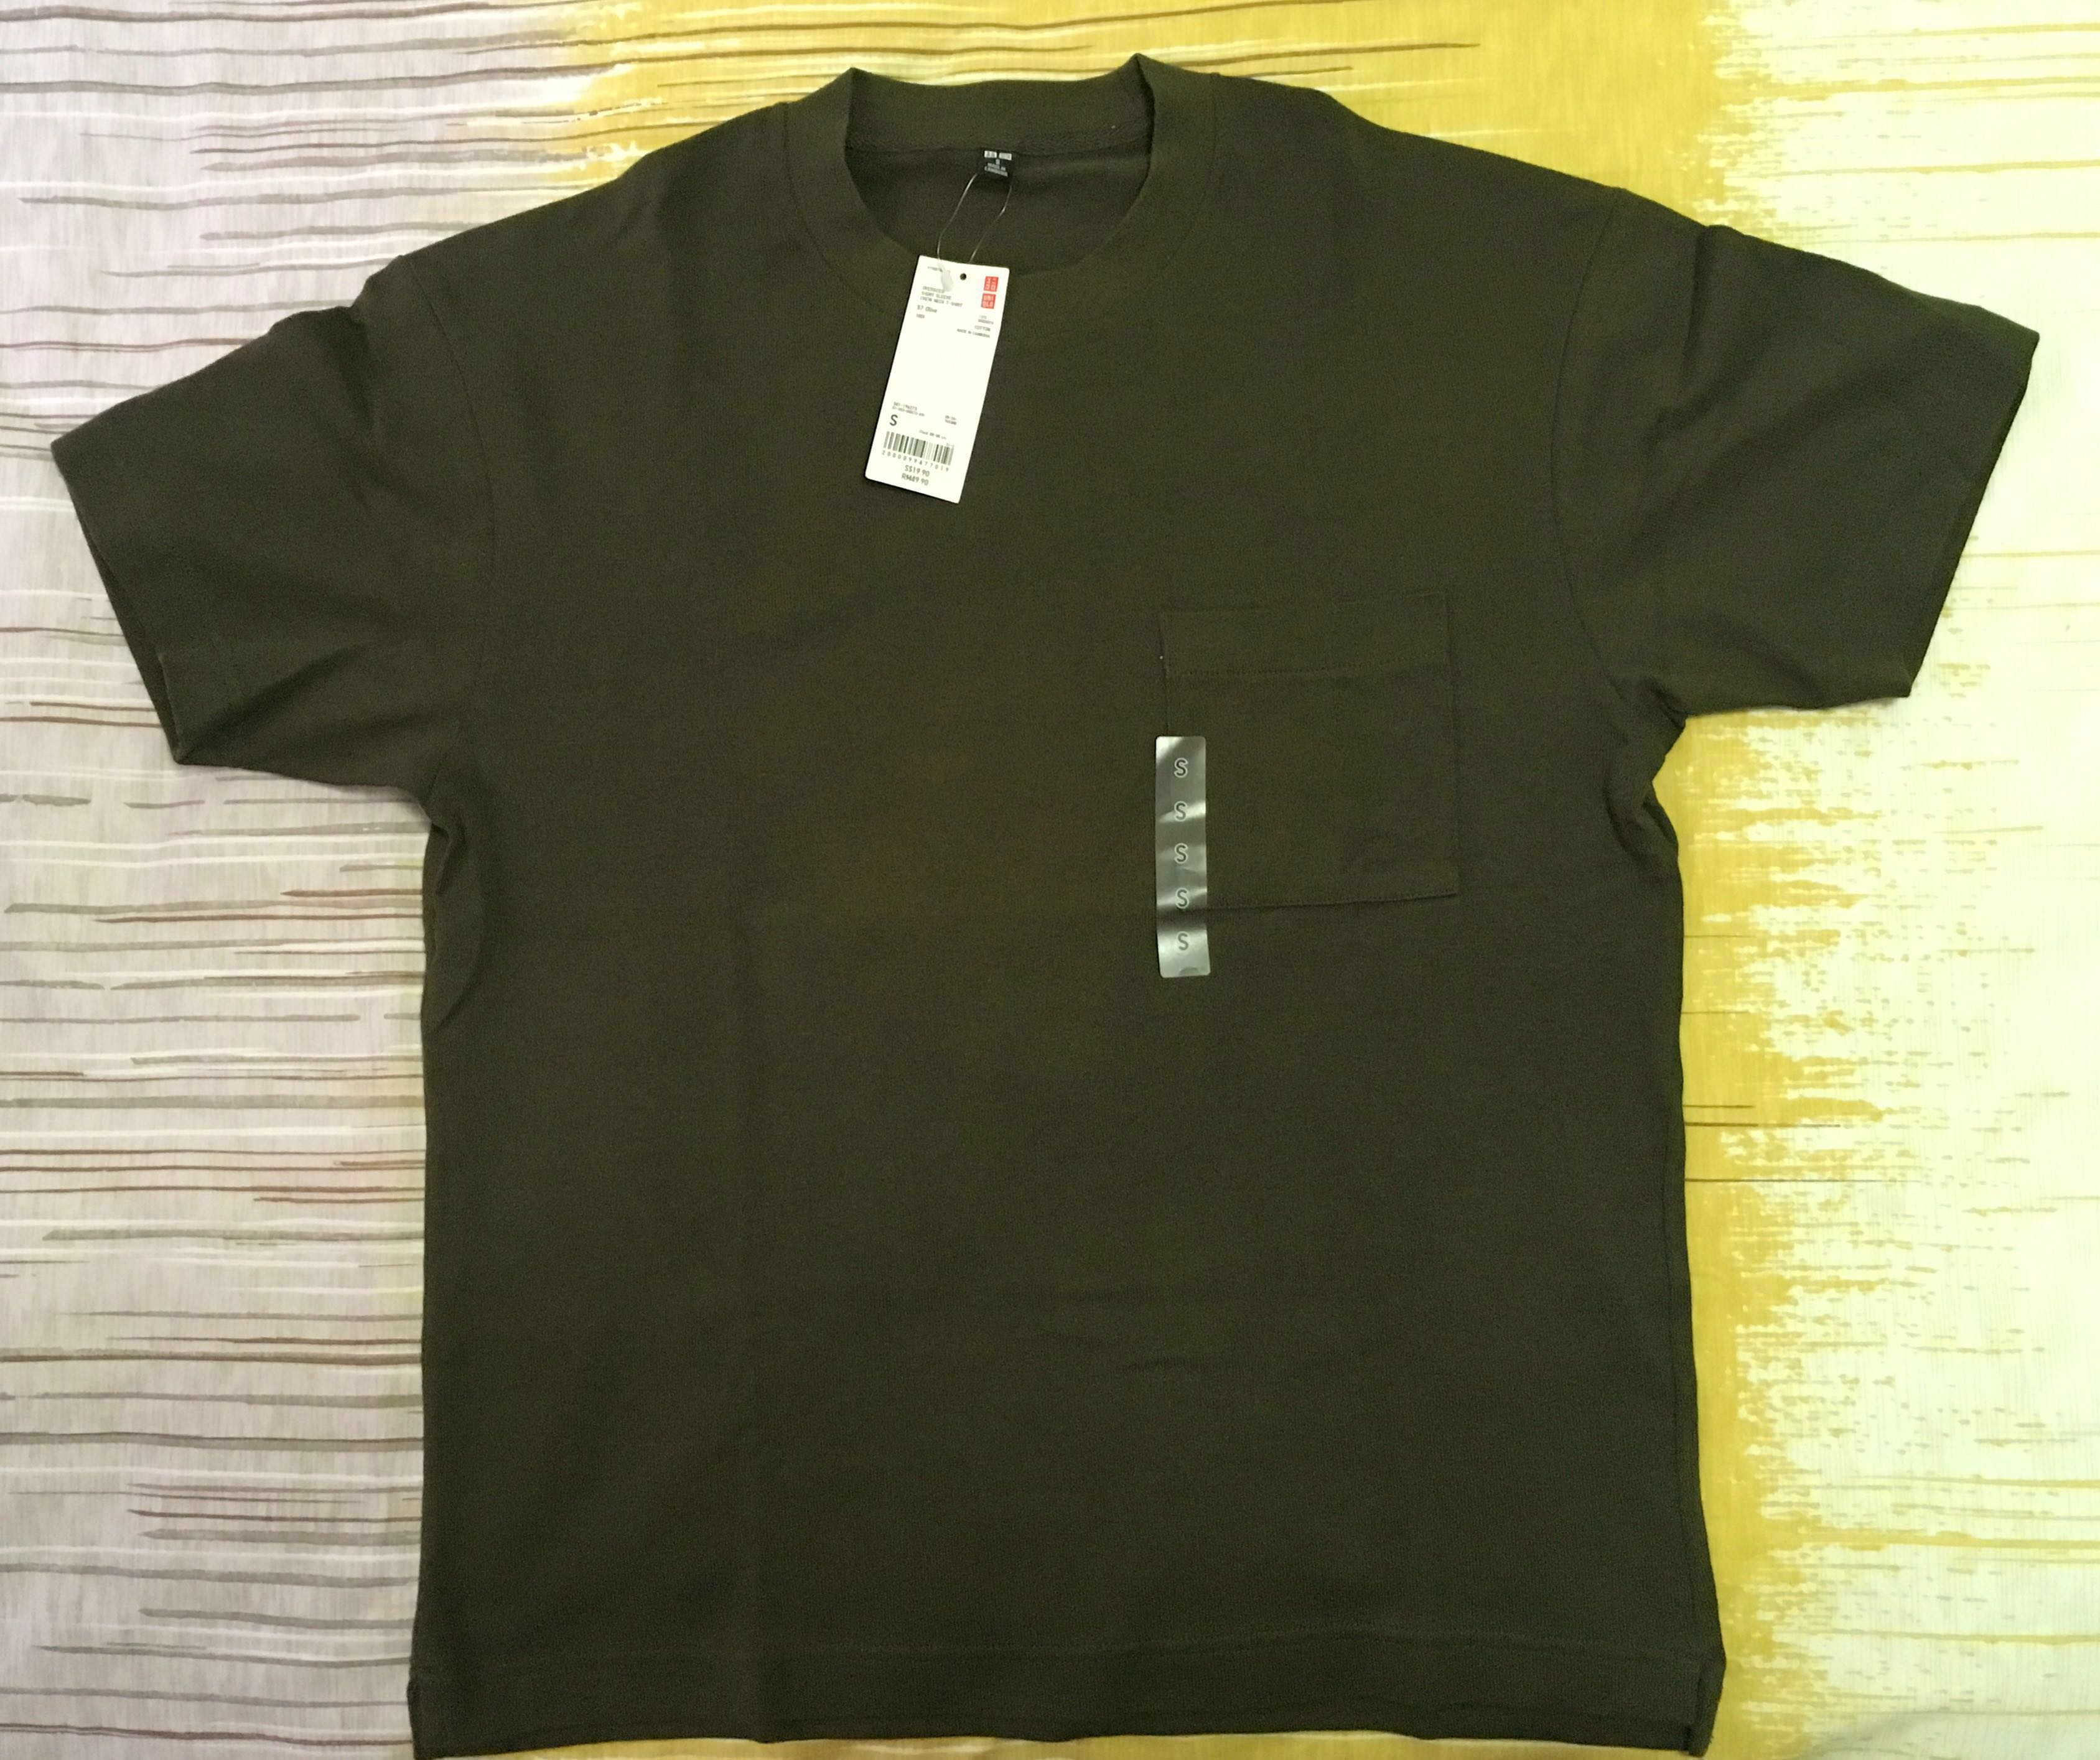 fe7d8366 Uniqlo T Shirt Price Philippines